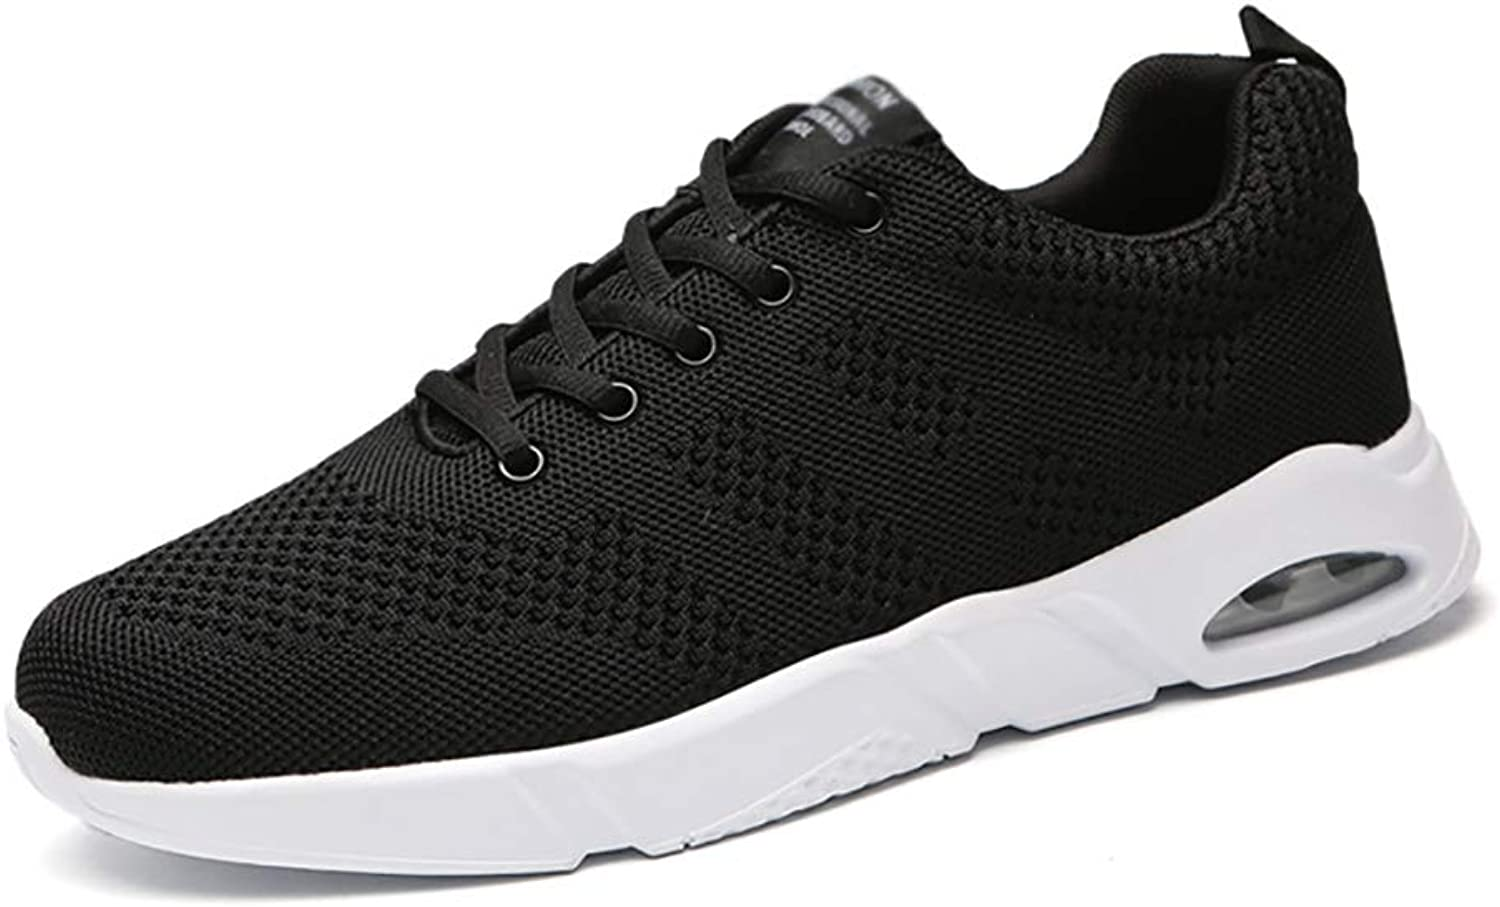 ZYFA Casual shoes Casual shoes for men and women lightweight mesh breathable sports shoes flat air cushion shock absorption sports running shoes (color   A, Size   44)